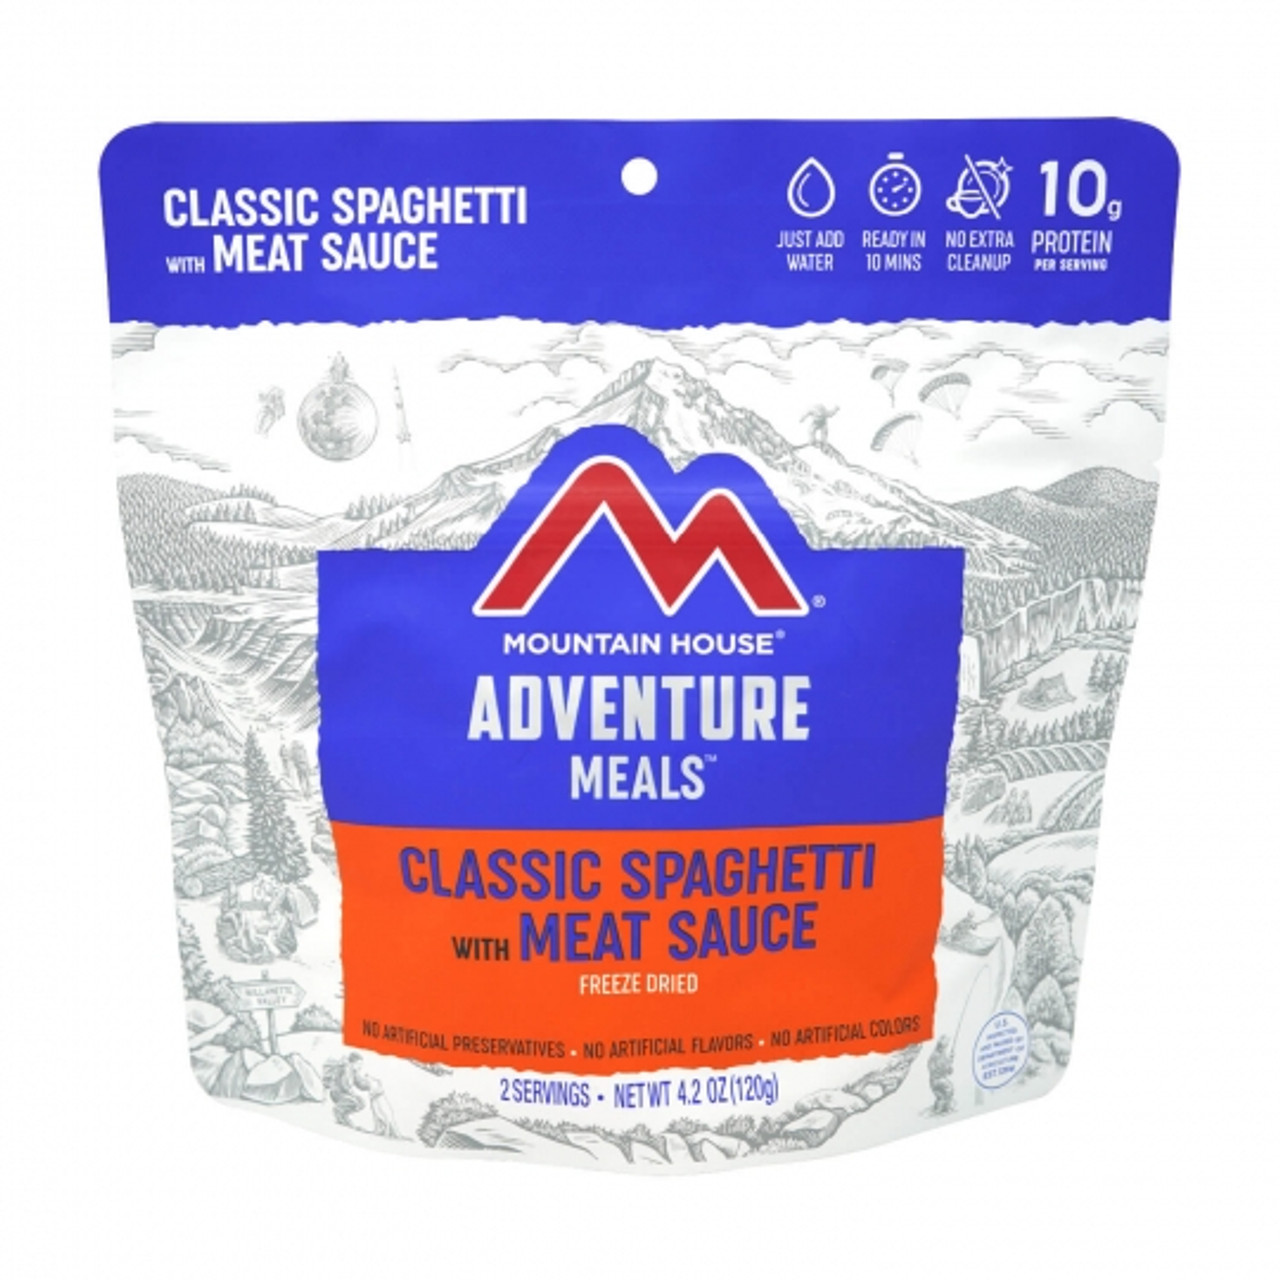 Mountain House Spaghetti with Beef pouch